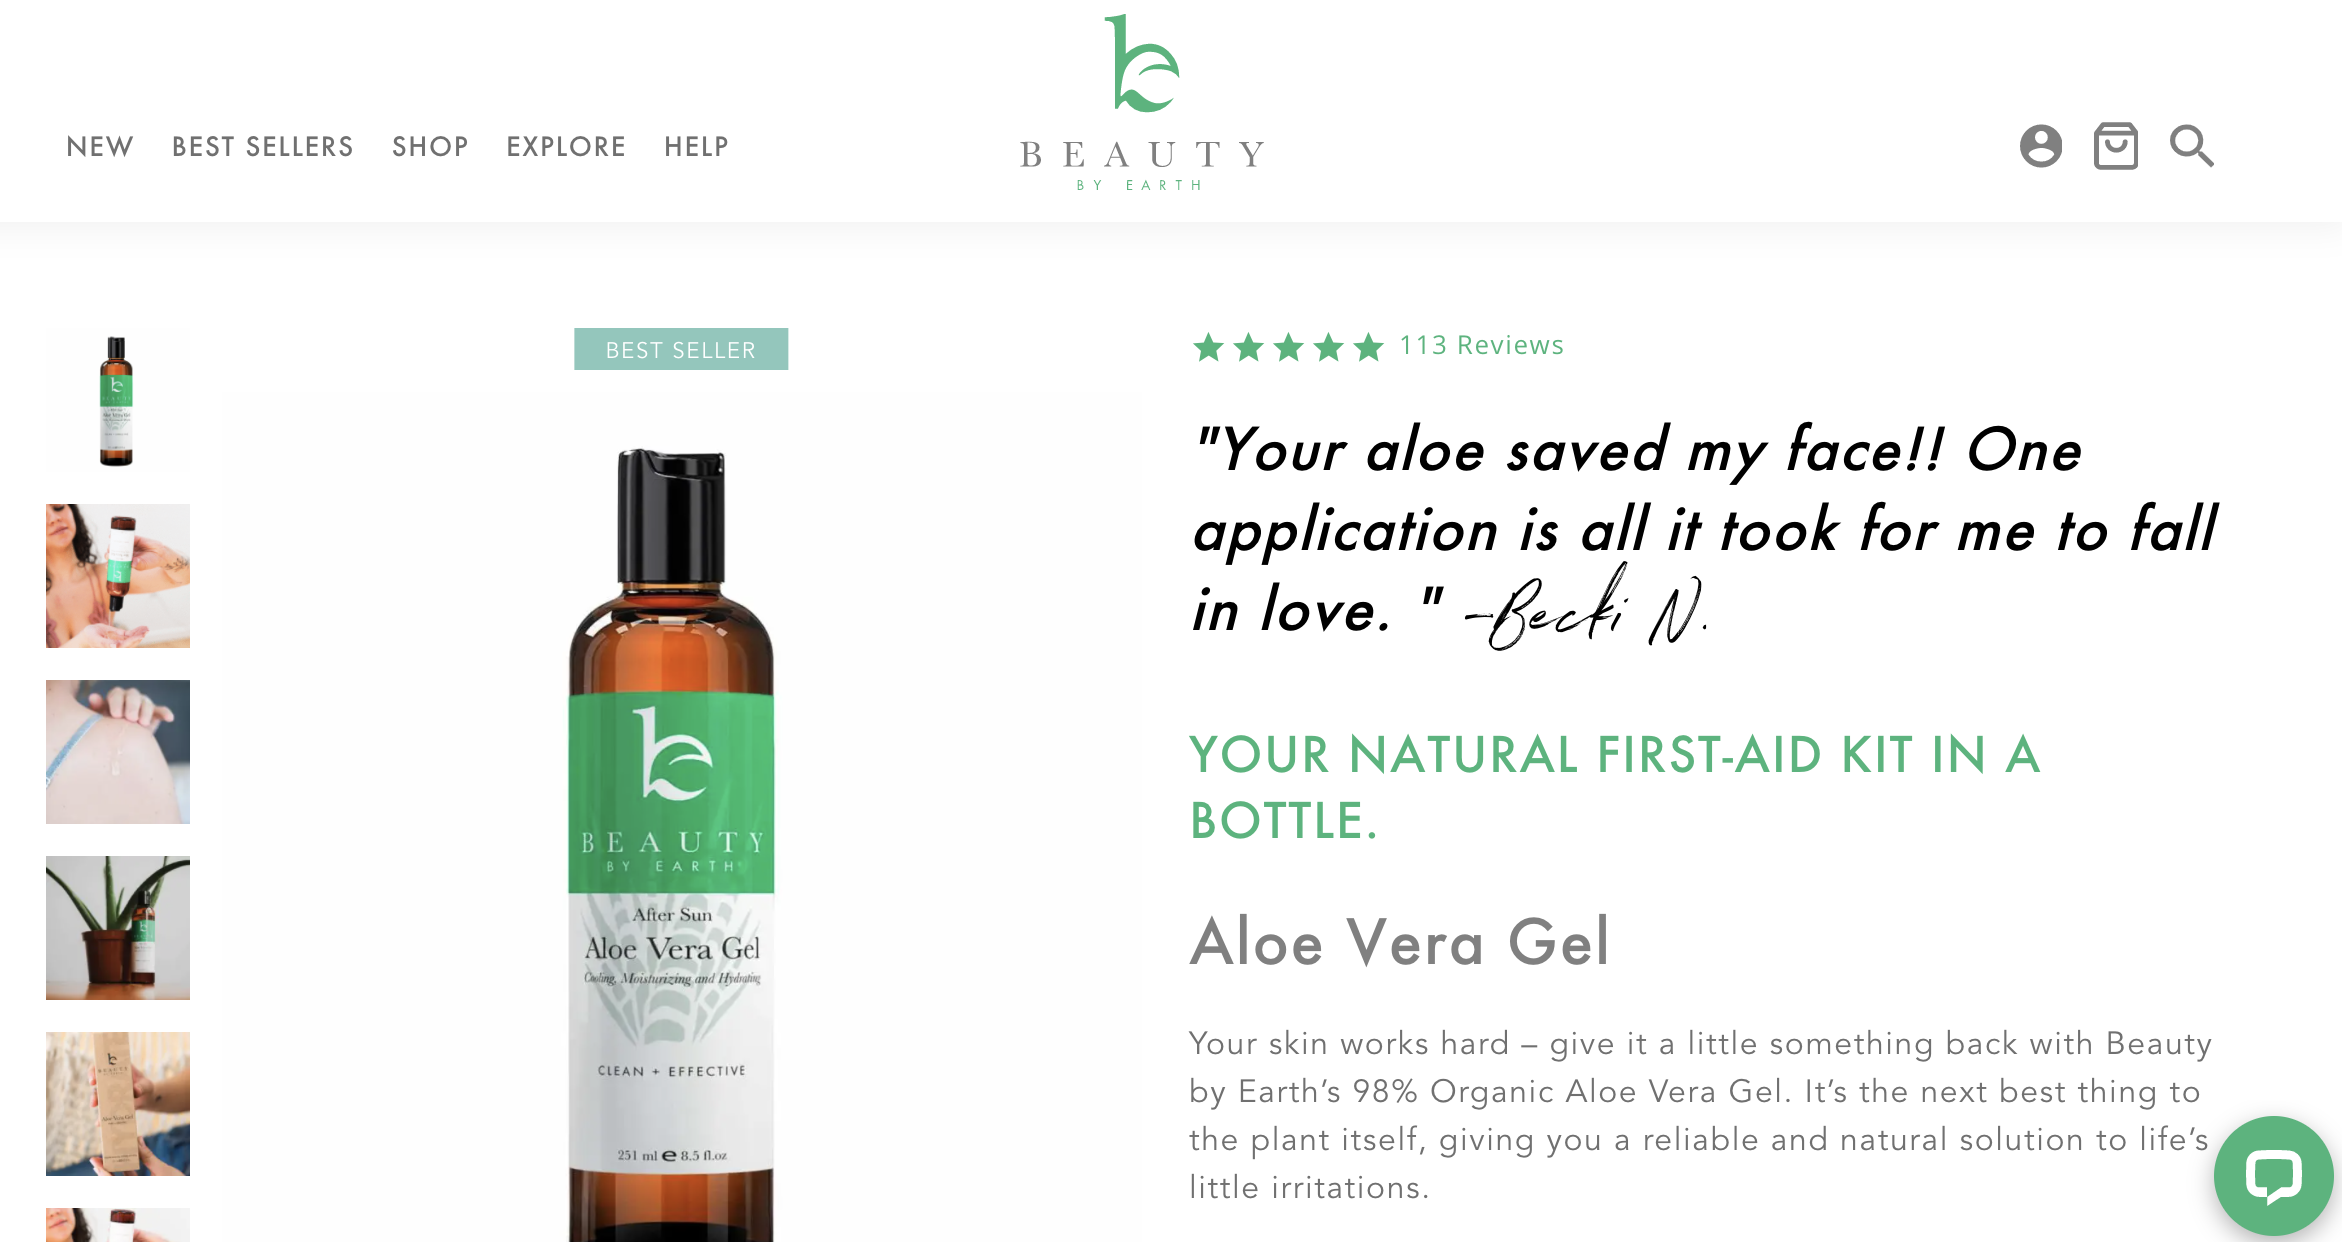 Beauty by Earth product page - Aloe Vera